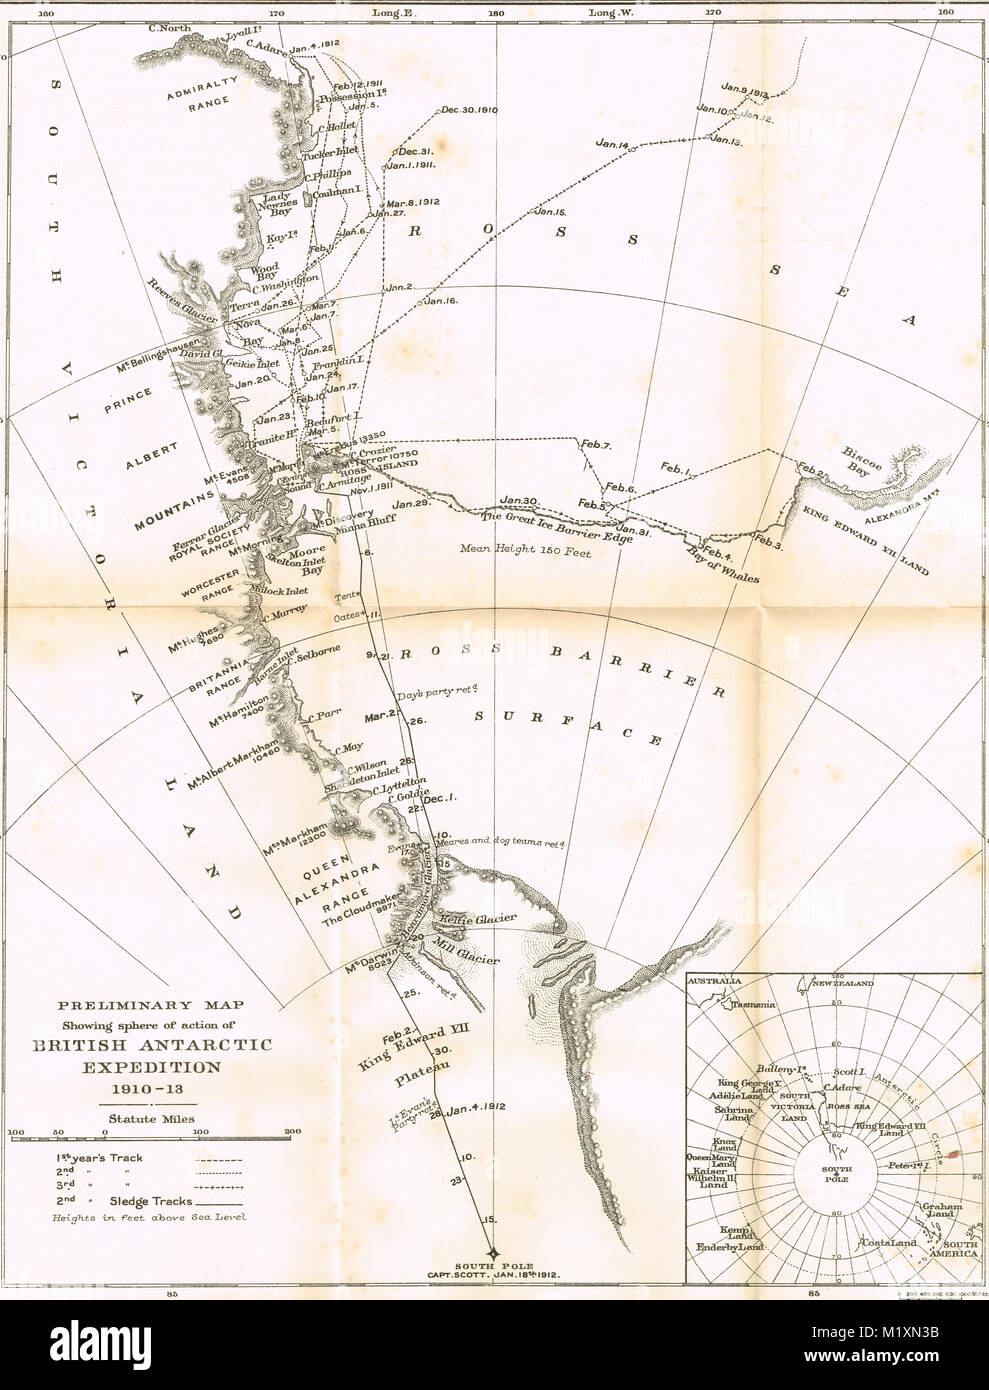 Preliminary map, showing sphere of action, British Antarctic Expedition 1910-13, Scott's final expedition - Stock Image